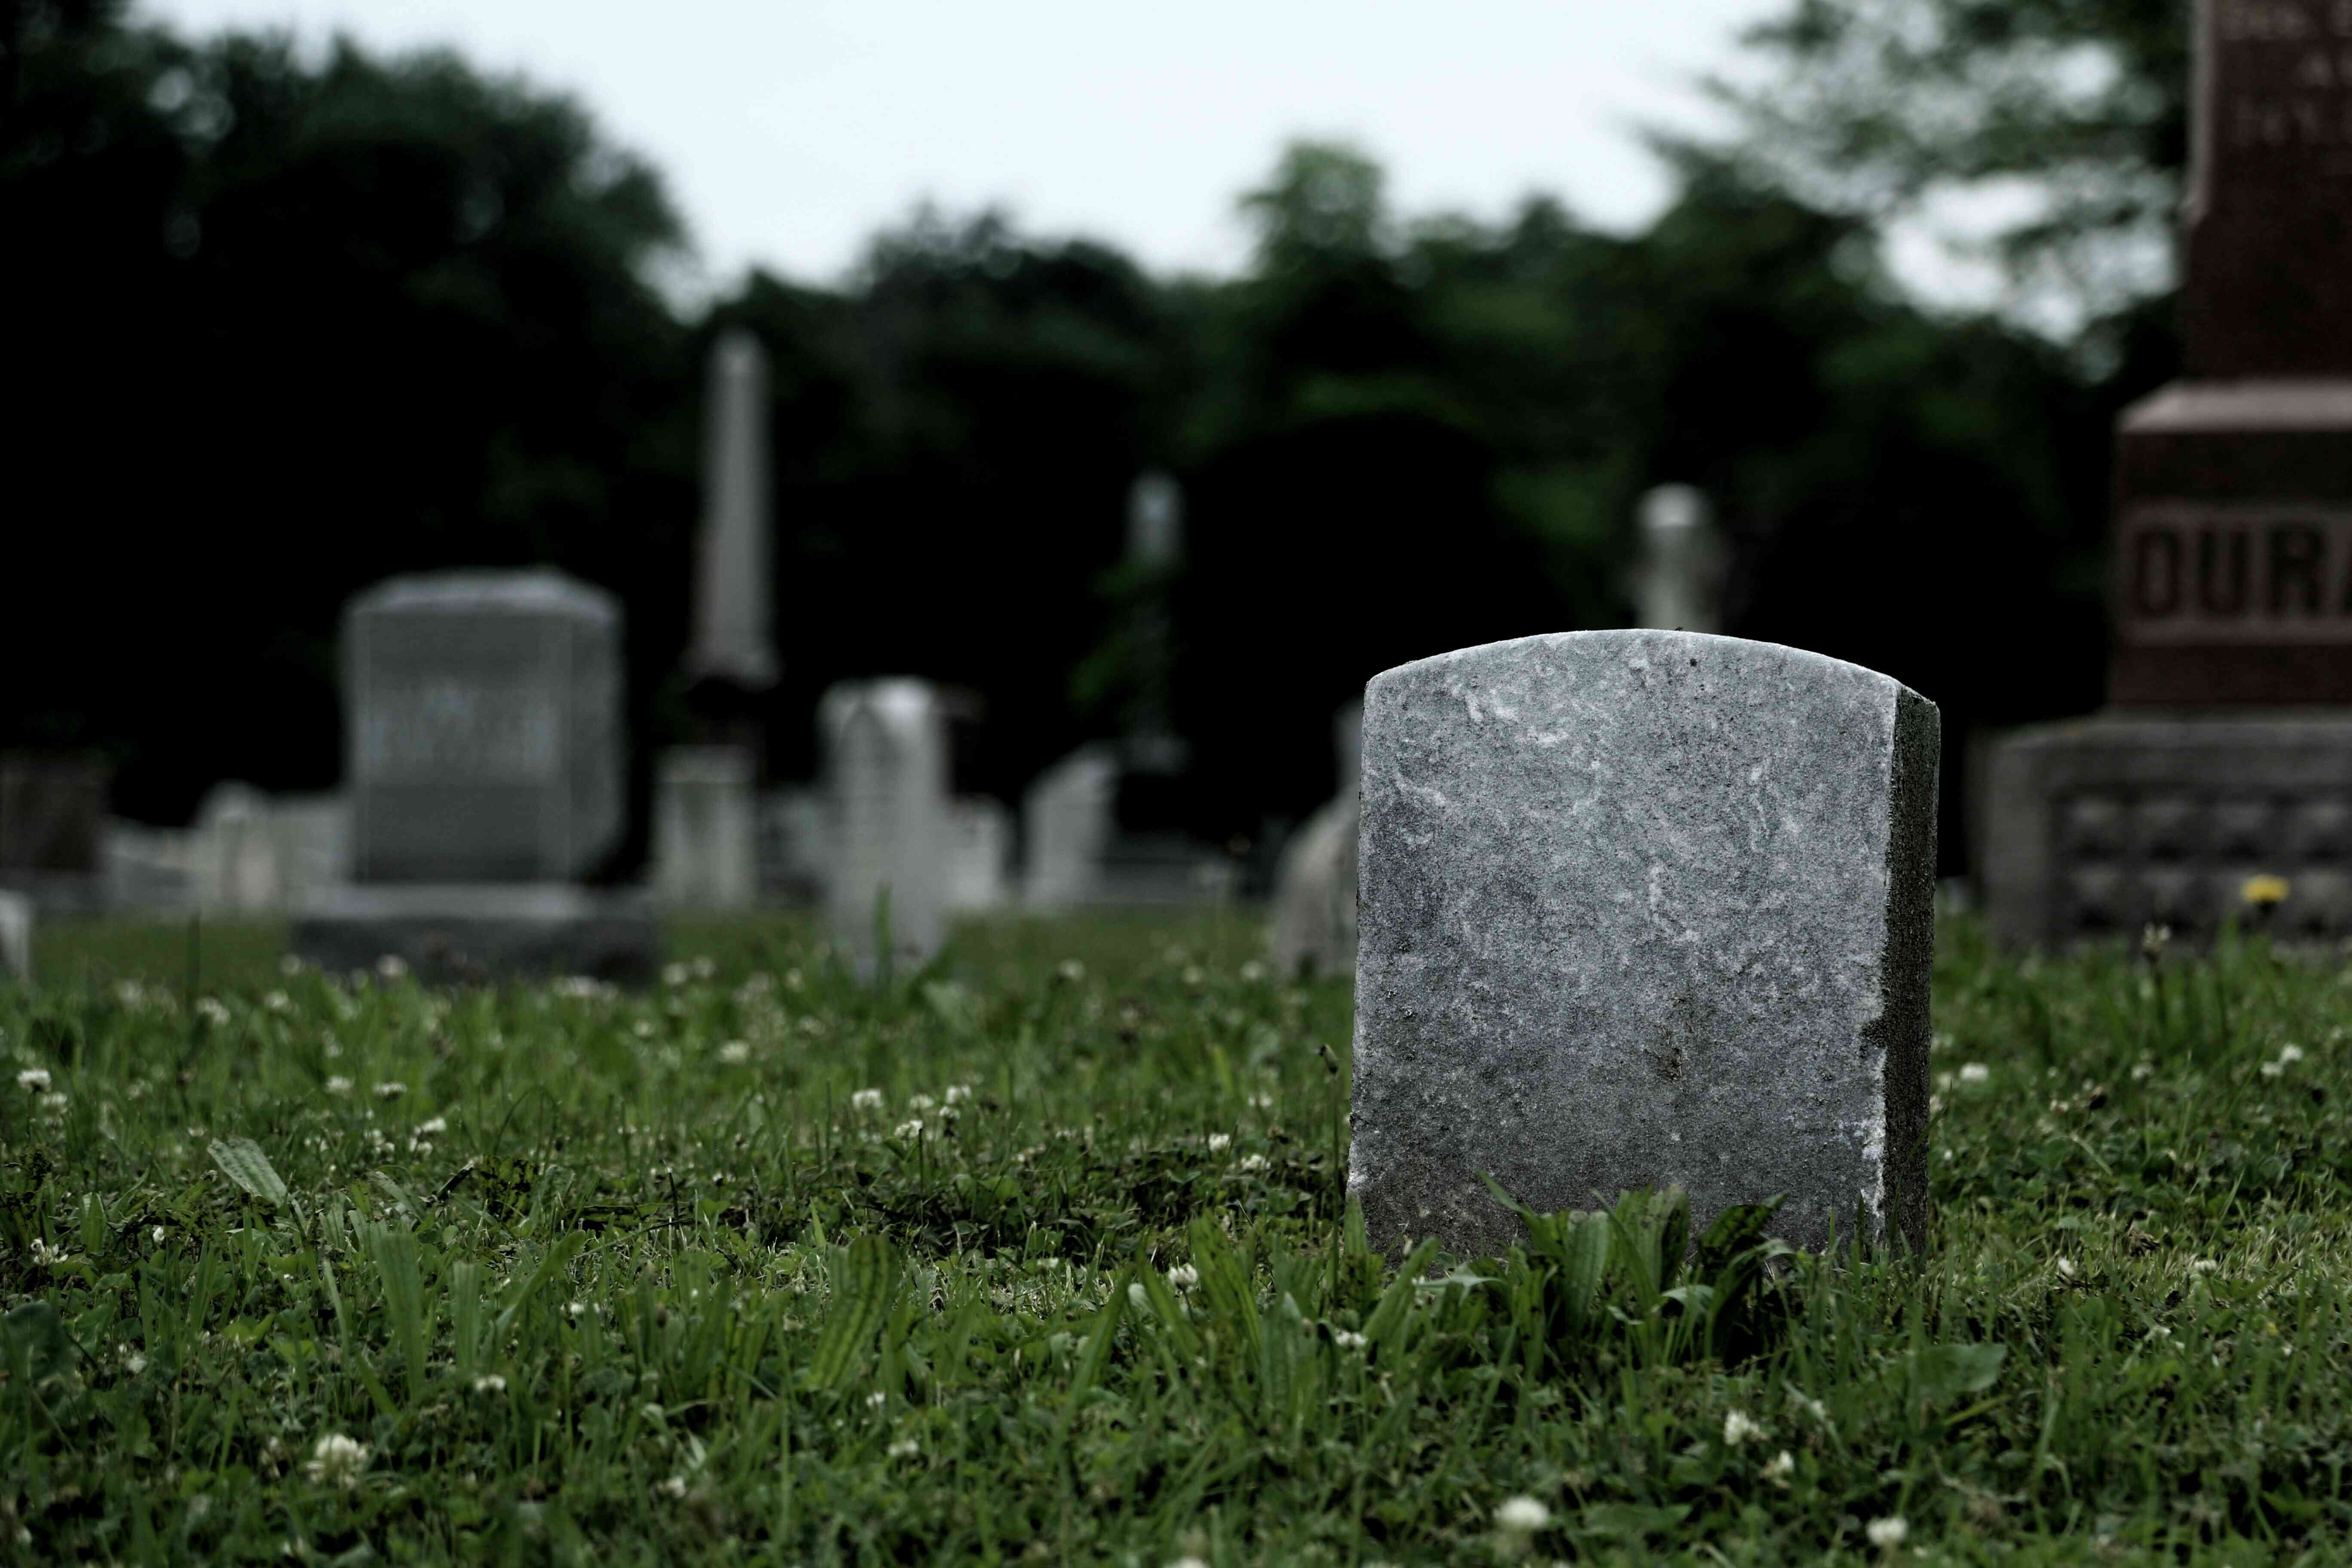 Tombstones in a grassy field